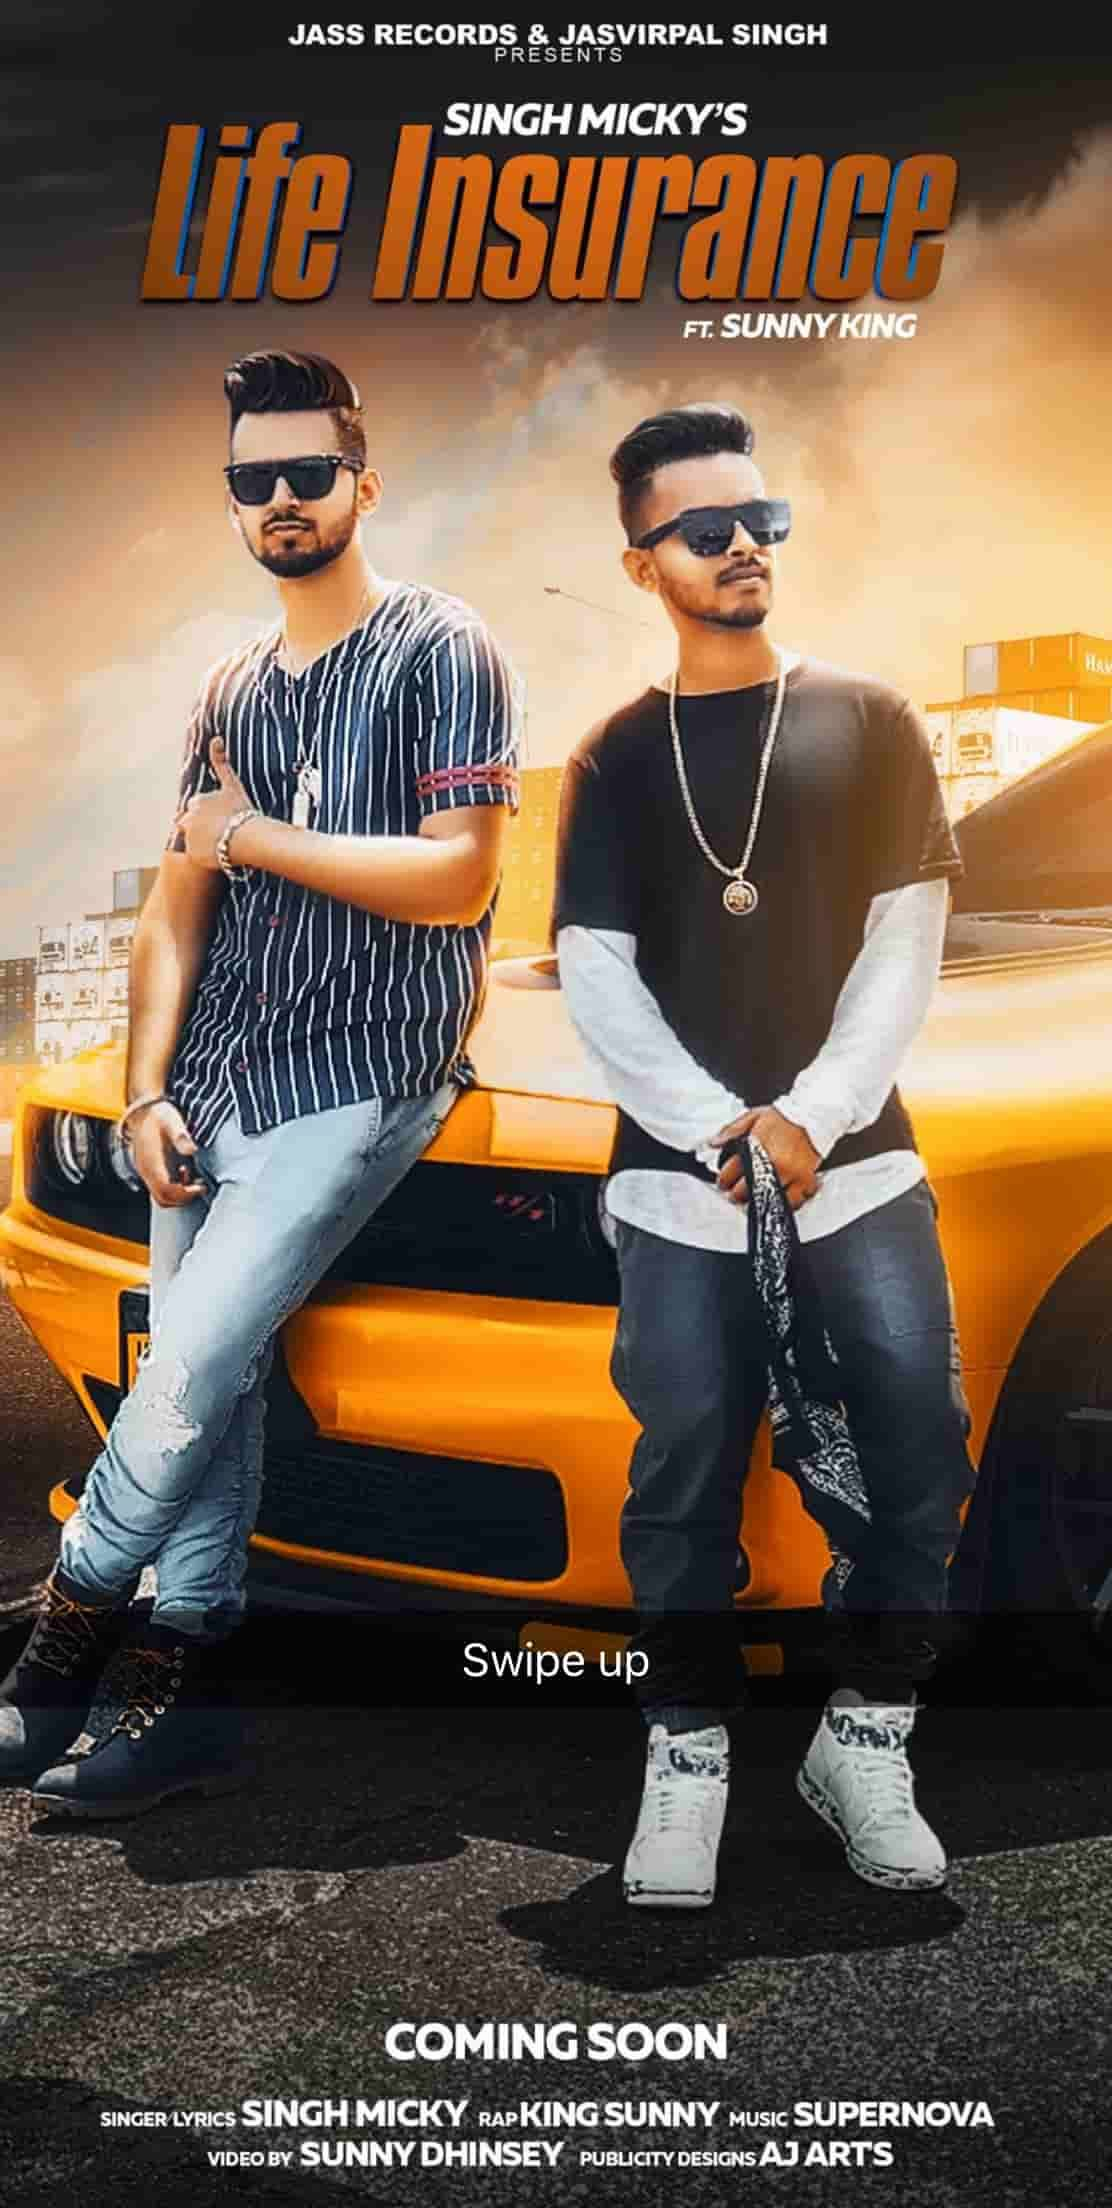 life insurance is new punjabi songs 2019 by Singh micky